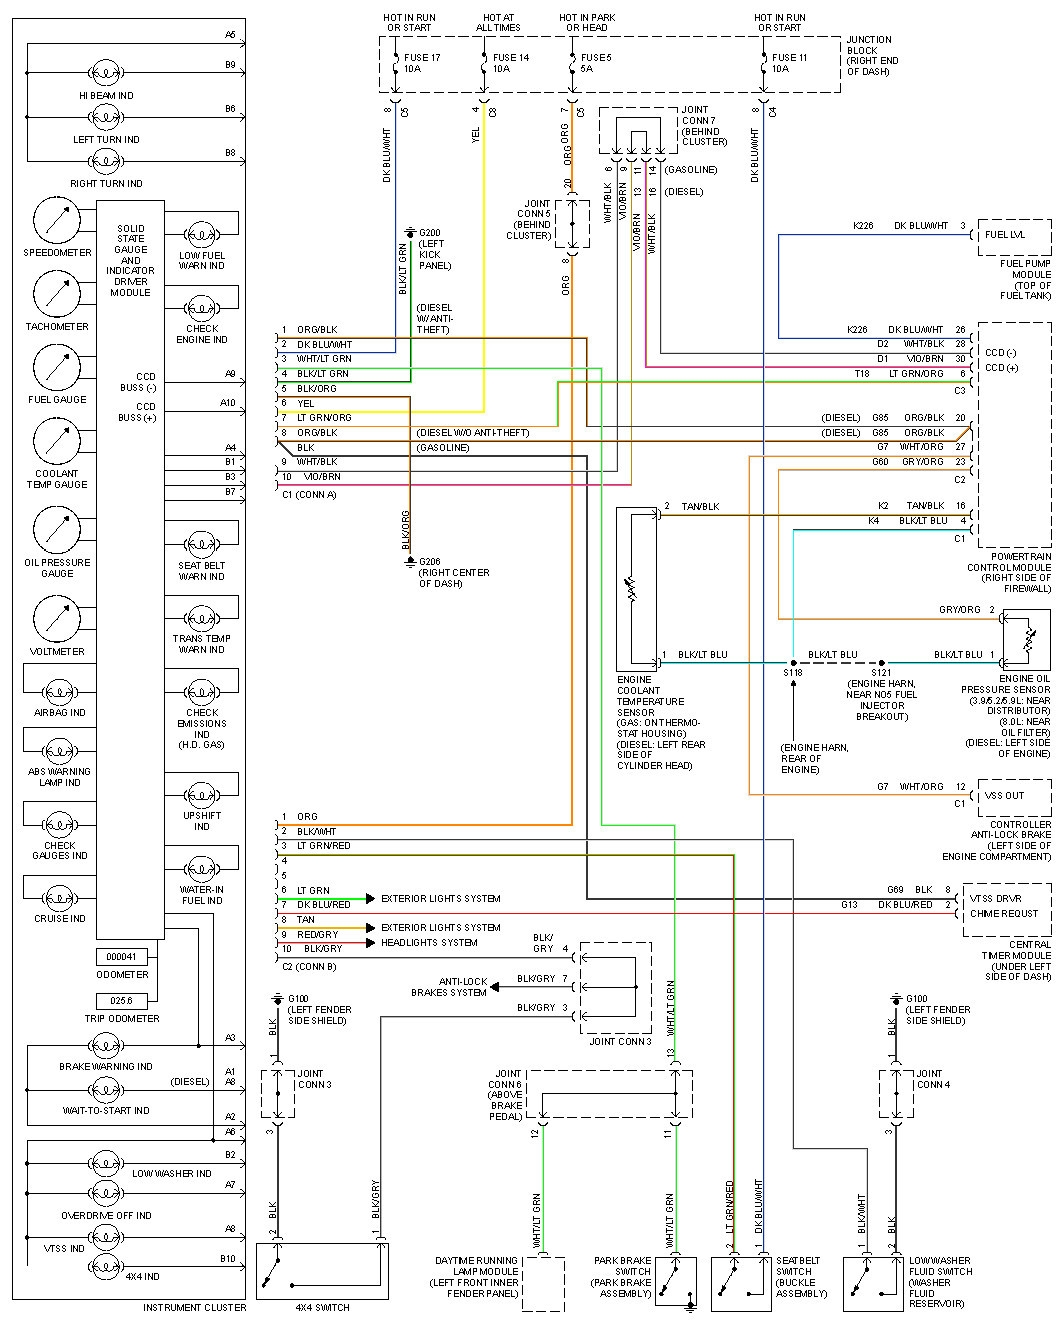 dodge ram wiring diagram 2005 1990 dodge ram wiring diagram 2005 dodge ram 2500 diesel wiring diagram | free wiring ...